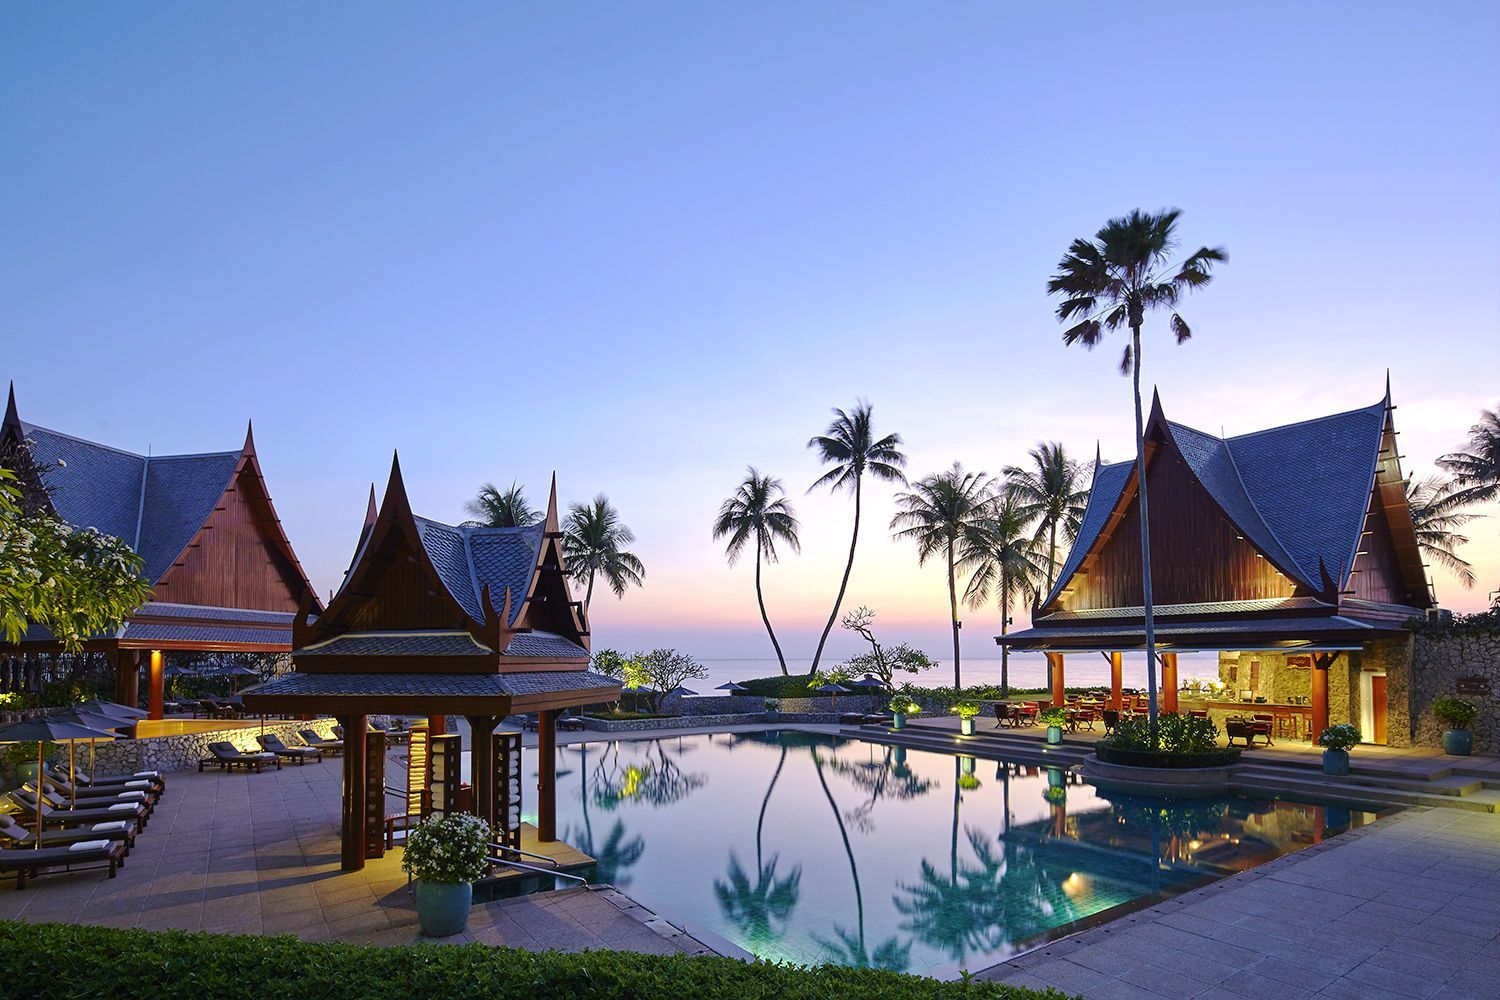 8 Luxury Hotels And Resorts In Asia That Are Set To Re-Open This Month